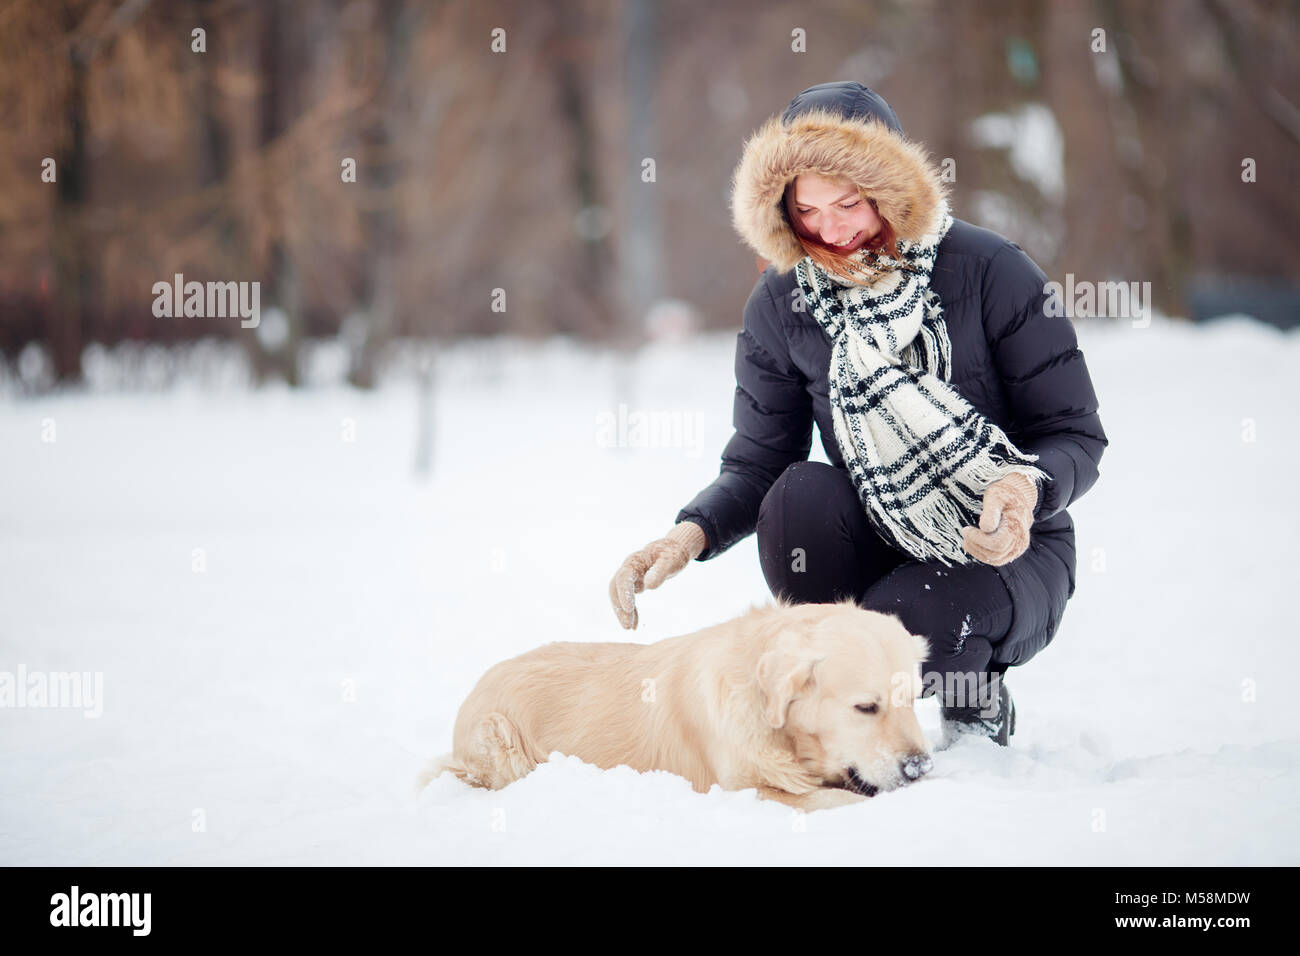 Picture of woman squatting next to labrador in winter park - Stock Image